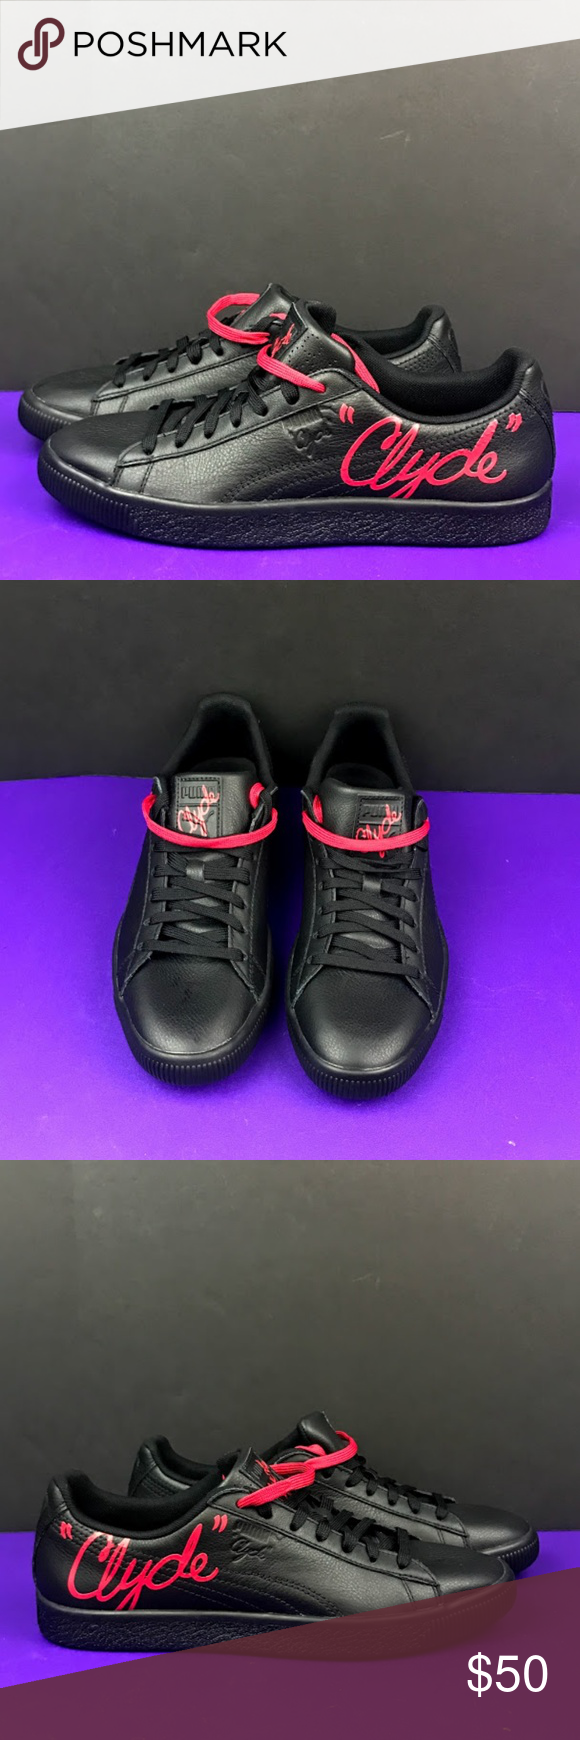 f03c9cac7d1 Puma CLYDE SIGNATURE Black Red Casual Shoes 8.5 Puma CLYDE SIGNATURE Black  Red - 366207-